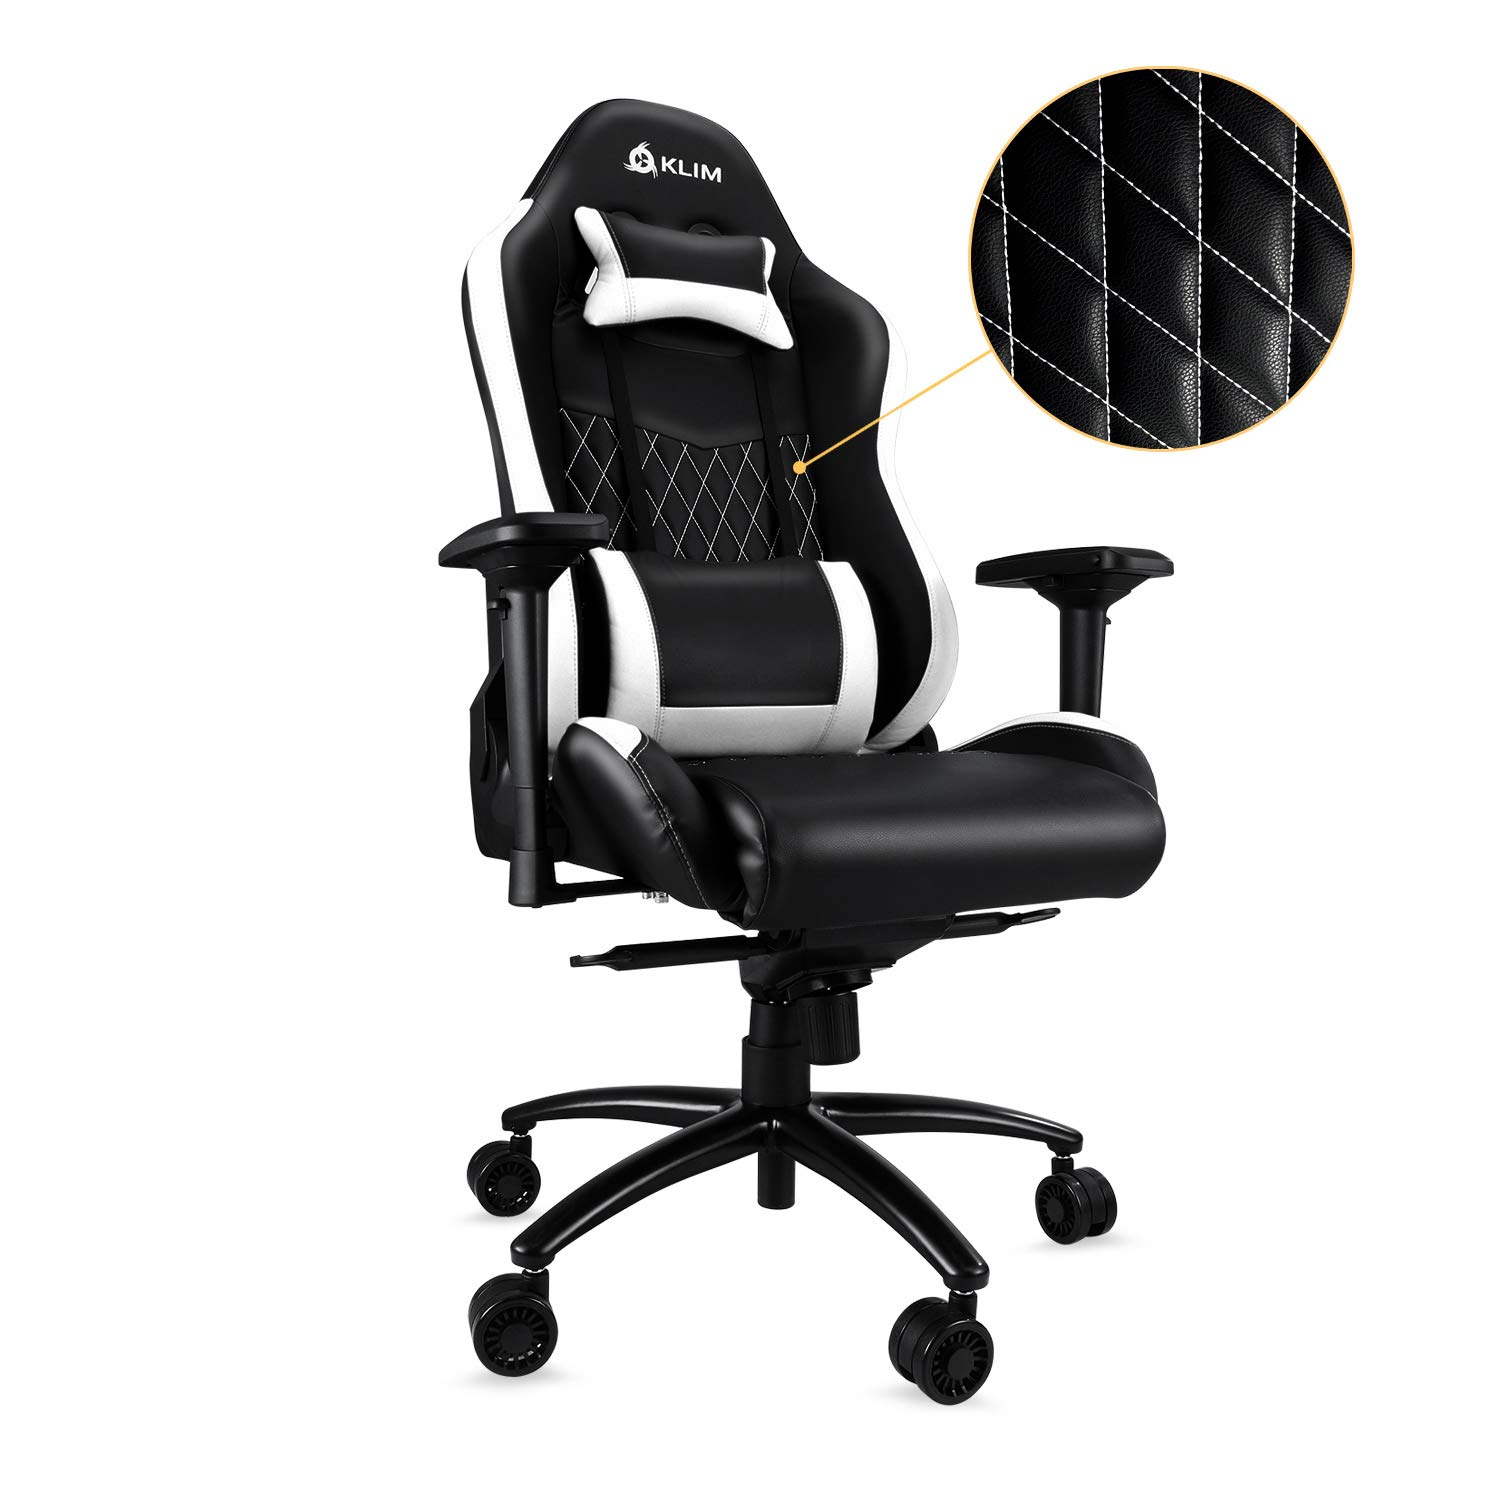 ... Esports Gaming Chair Executive Ergonomic Racing Computer Chair - Back & Head Support - New - Adjustable Armrest - Desk & Office Recliner - Silla Gamer ...